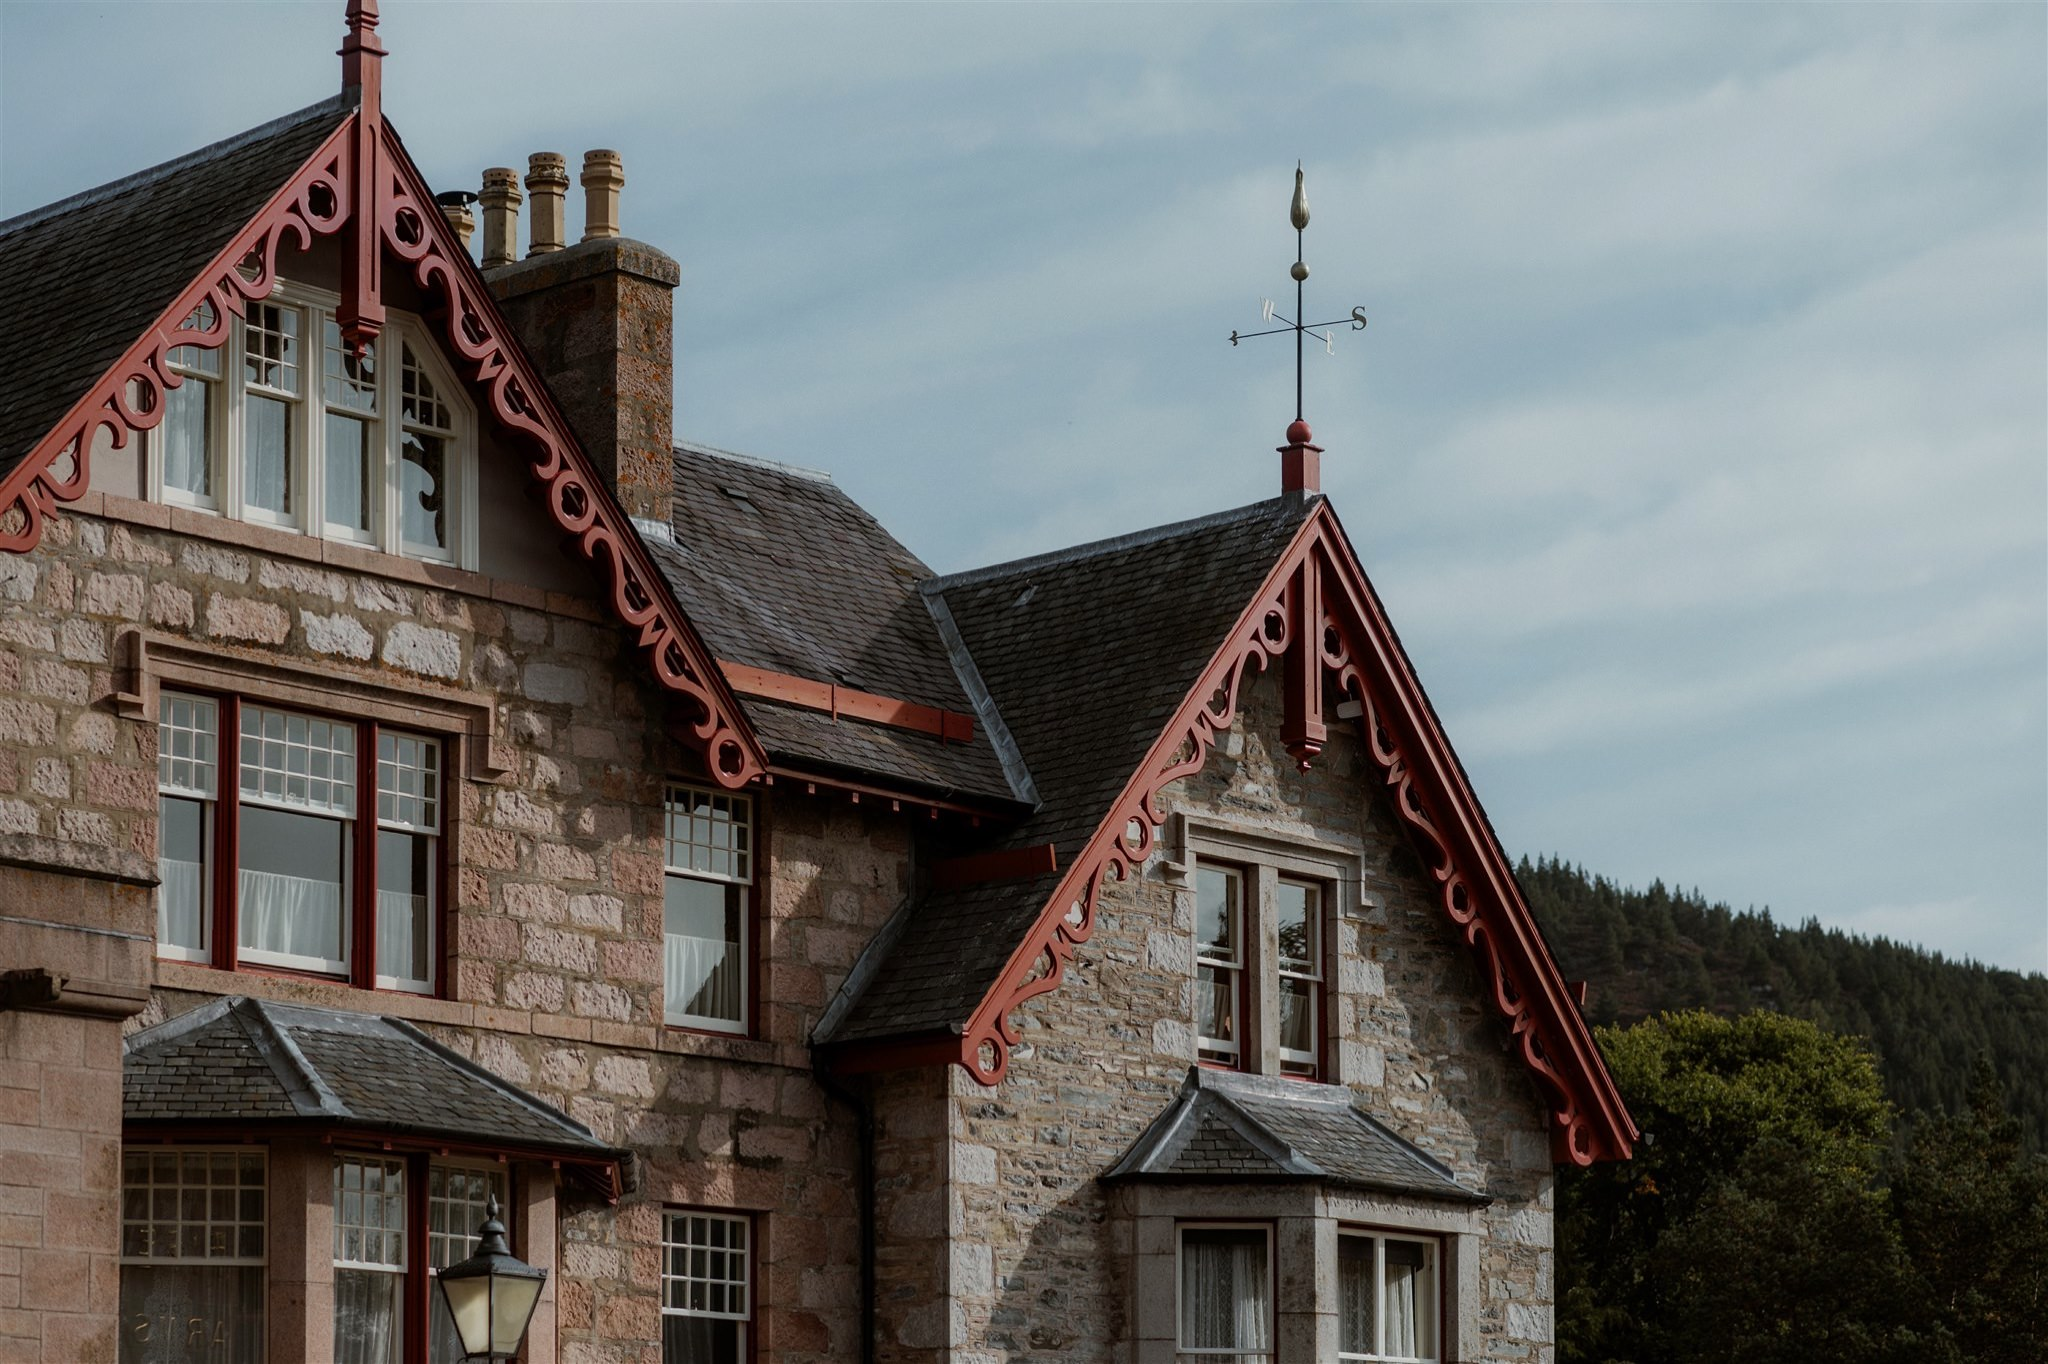 Outside the Fife Arms in Braemar